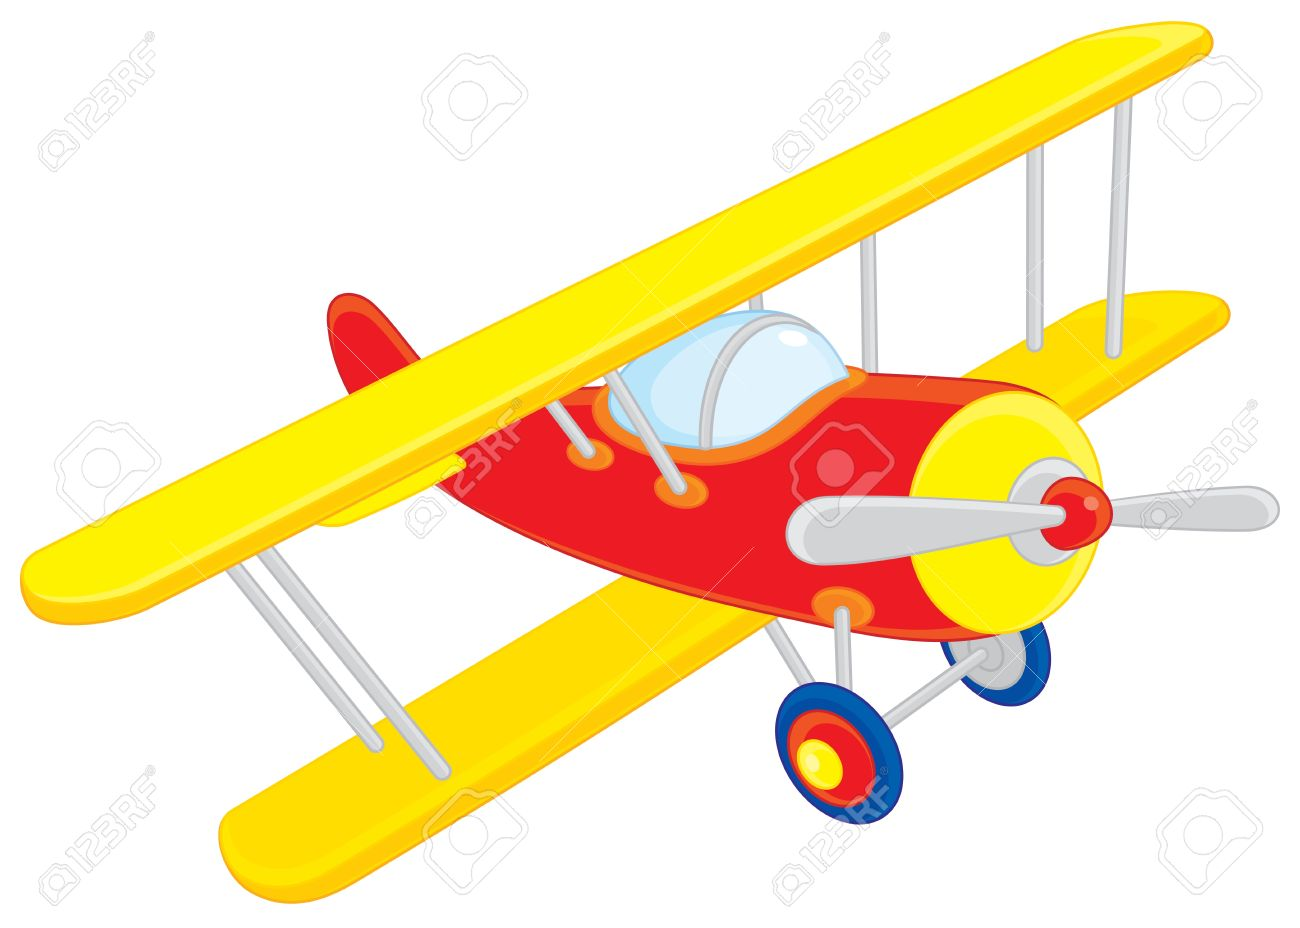 1300x928 Airplane Clipart Toy Plane